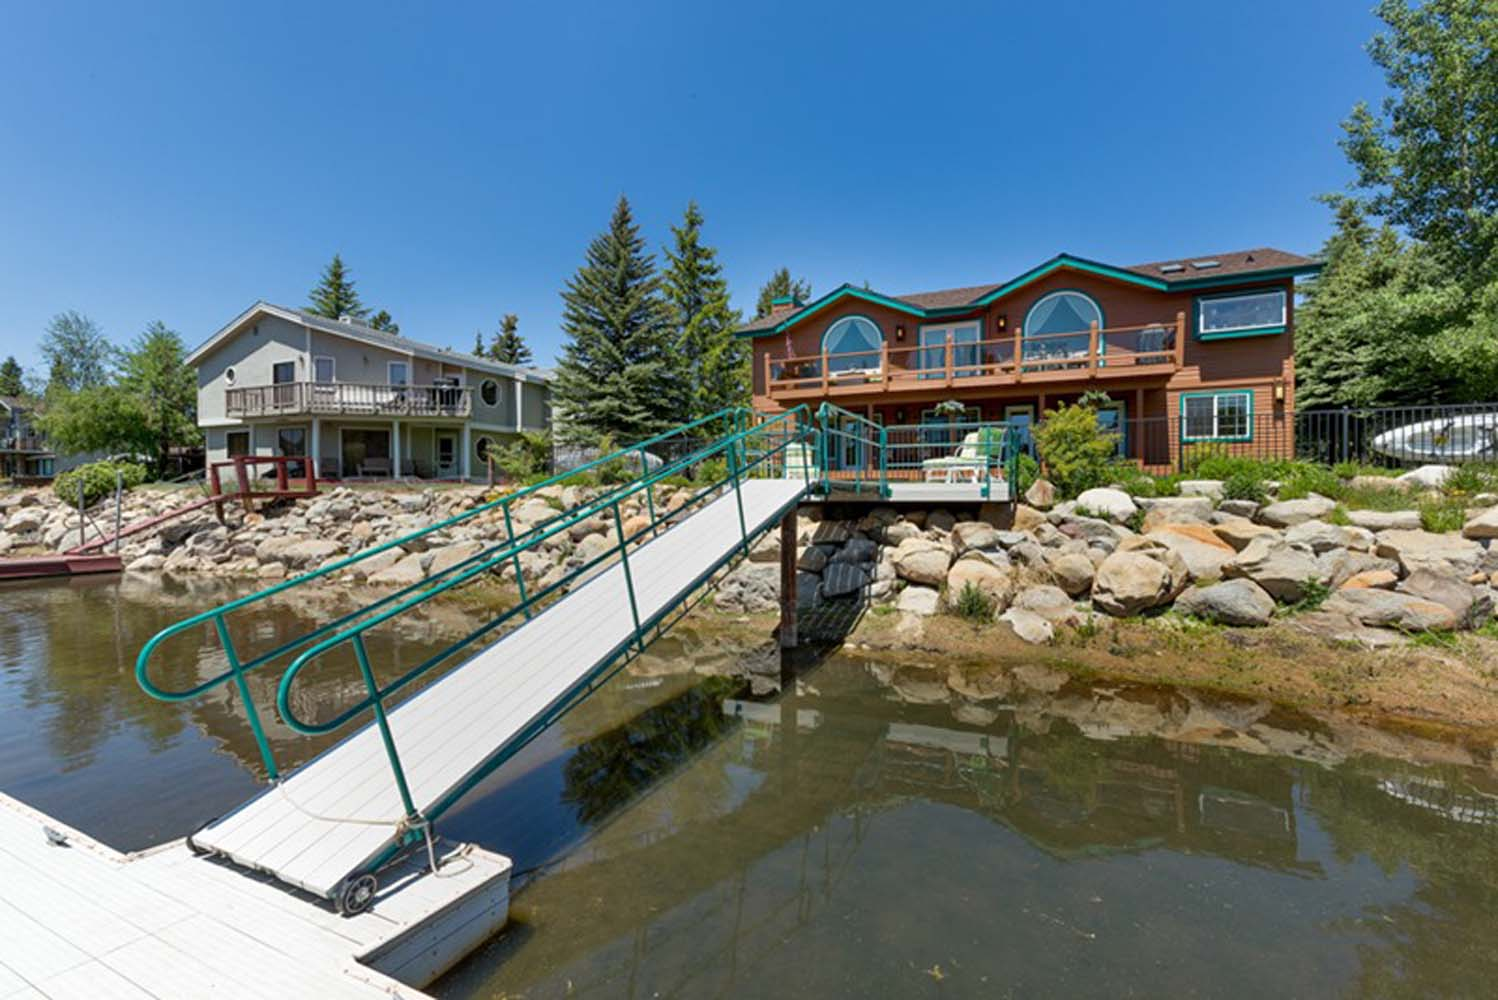 2232 White Sands,South Lake Tahoe,Nevada,United States 96150,5 Rooms Rooms,3 BathroomsBathrooms,House,White Sands,1019